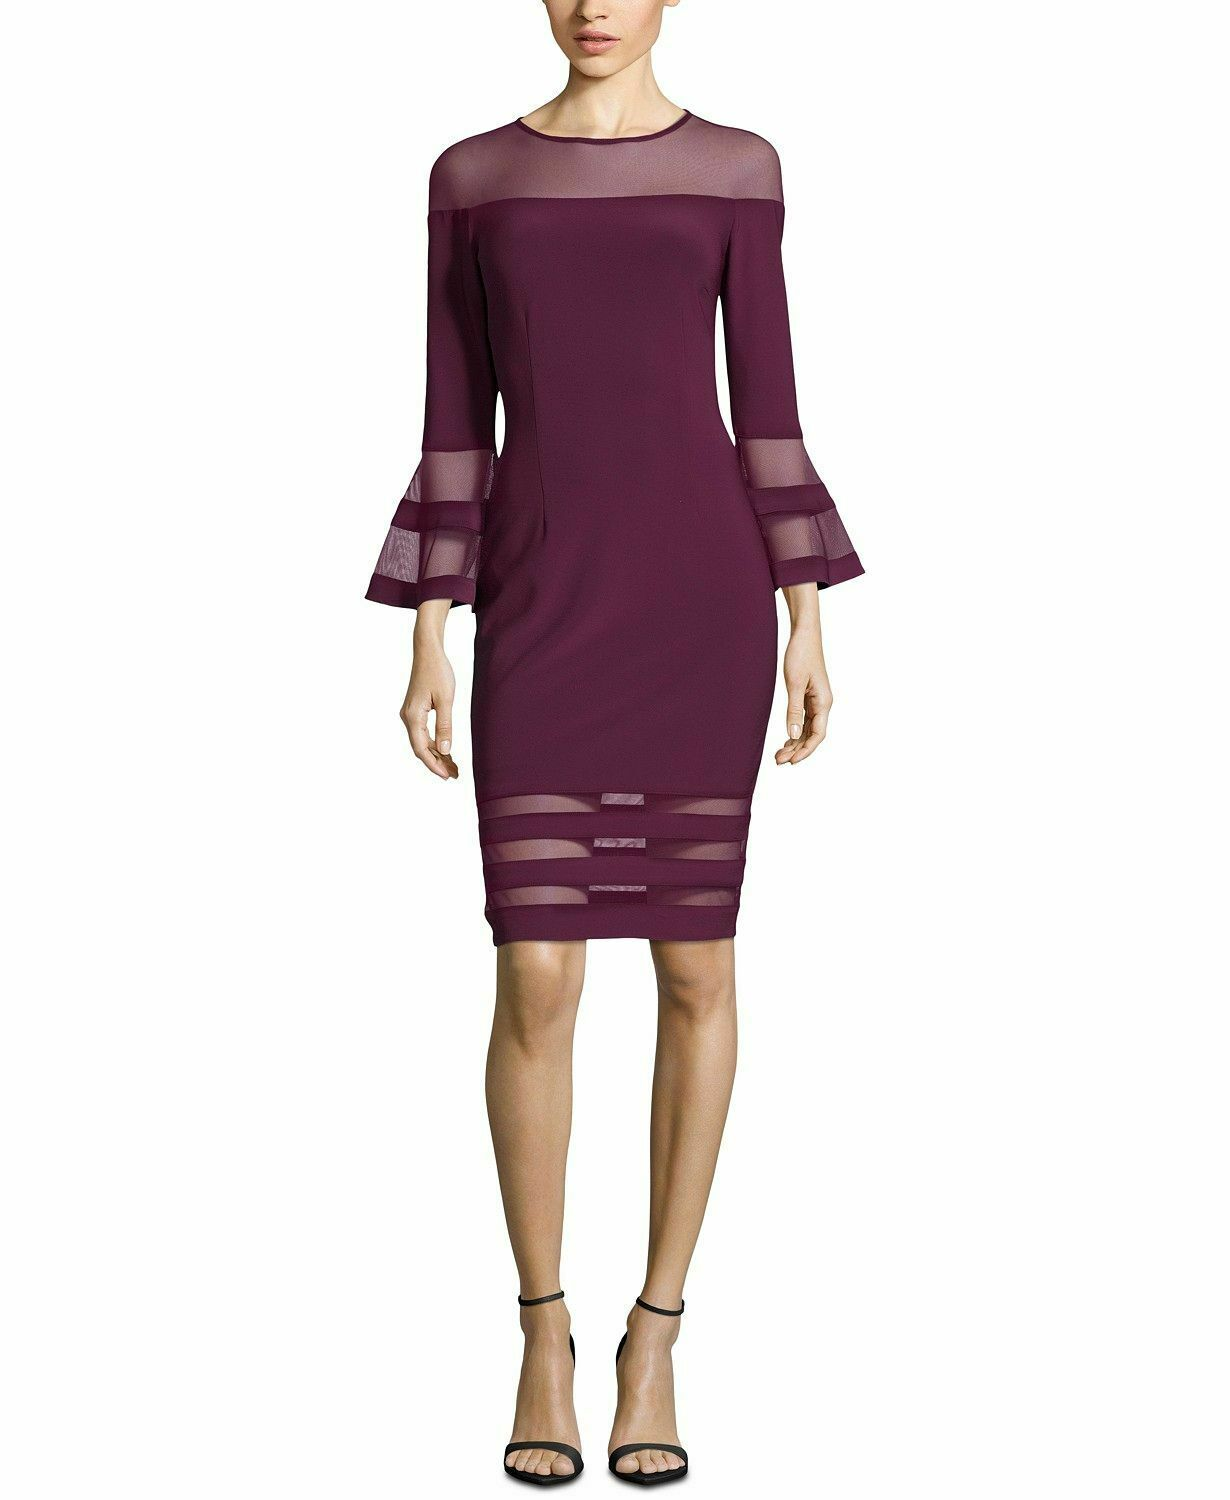 399 BETSY & ADAM WOMEN PURPLE ILLUSION-STRIPE BELL-SLEEVE SHEATH DRESS SIZE 4